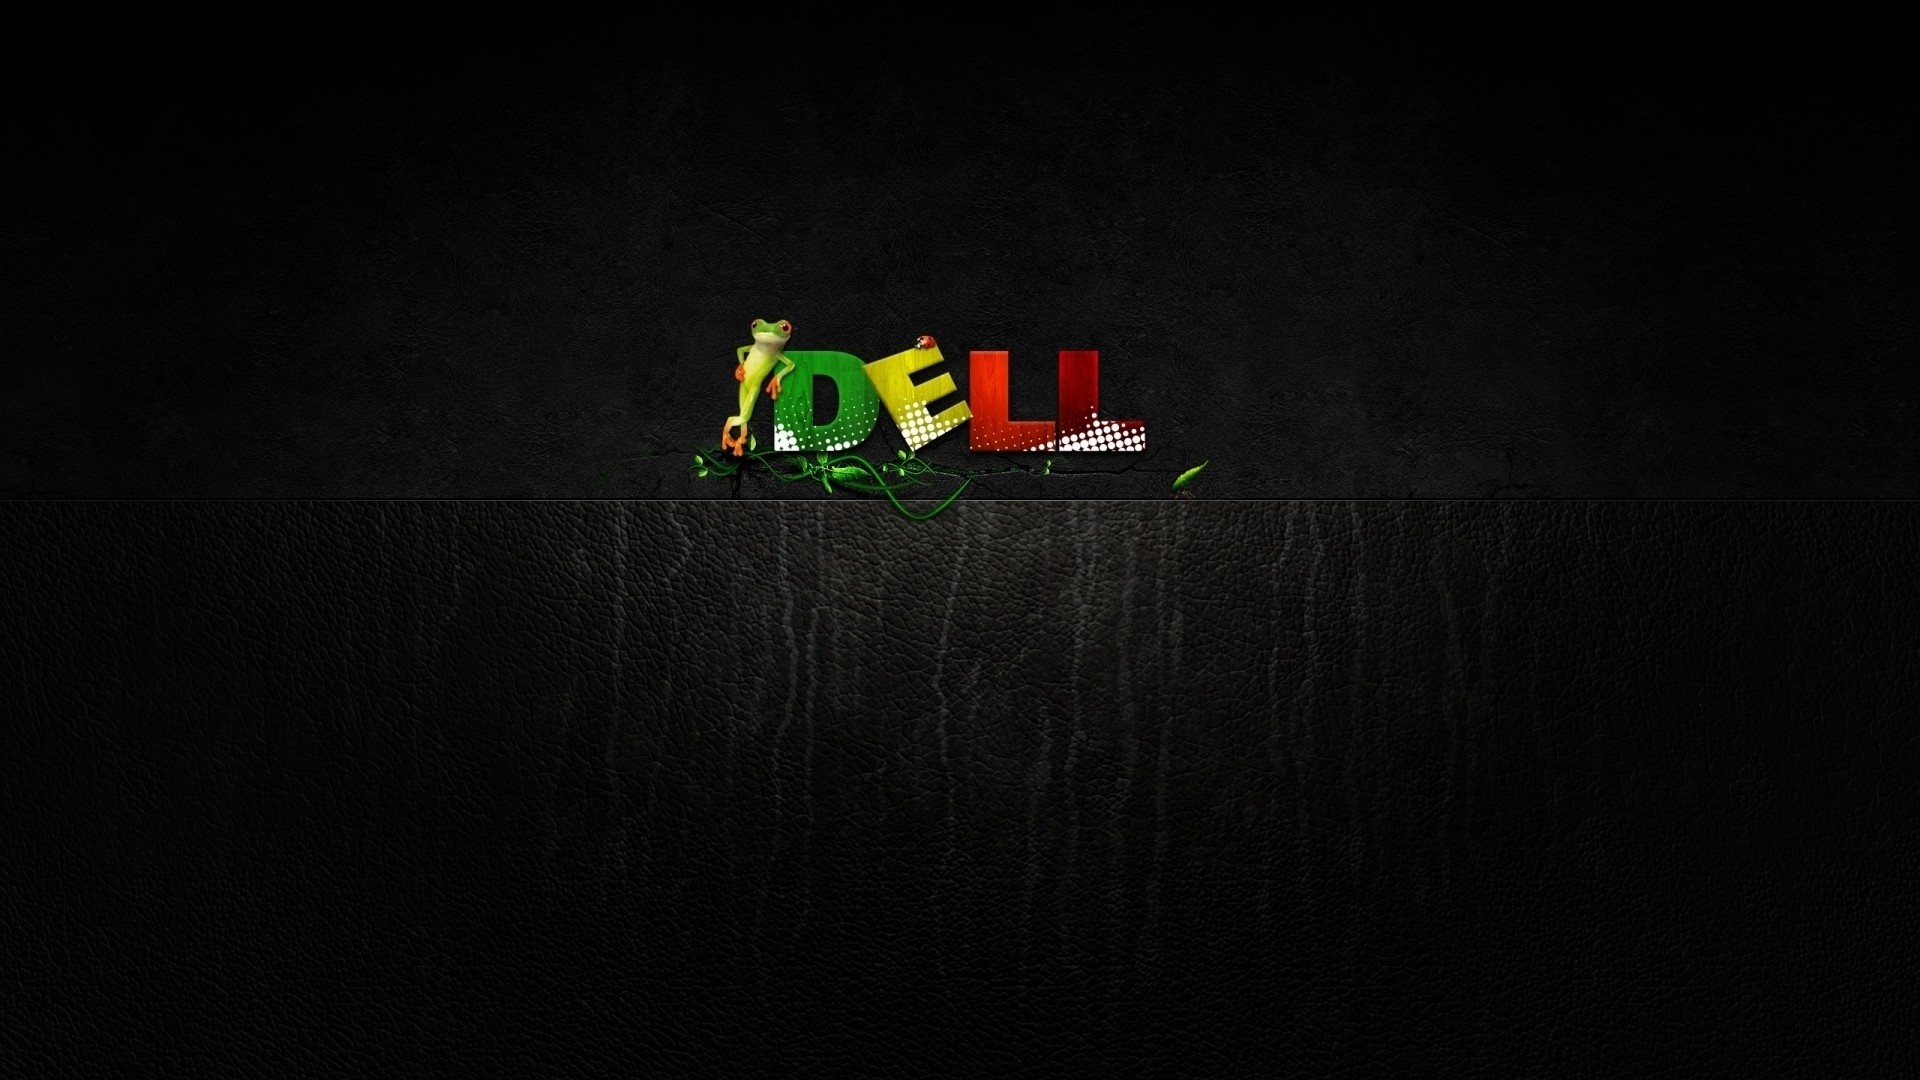 Preview wallpaper dell, company, computers, frog, green, yellow, red  1920×1080